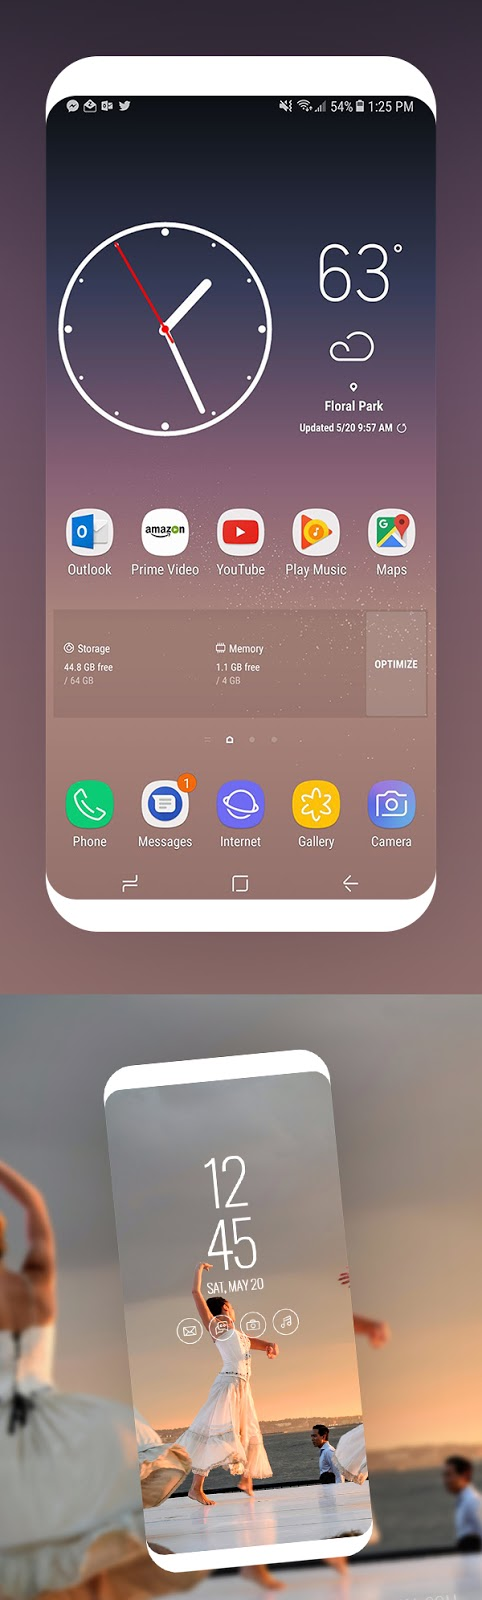 Download Free Mockup PSD 2018 - Free Samsung Galaxy S8 Screen Mockup Design